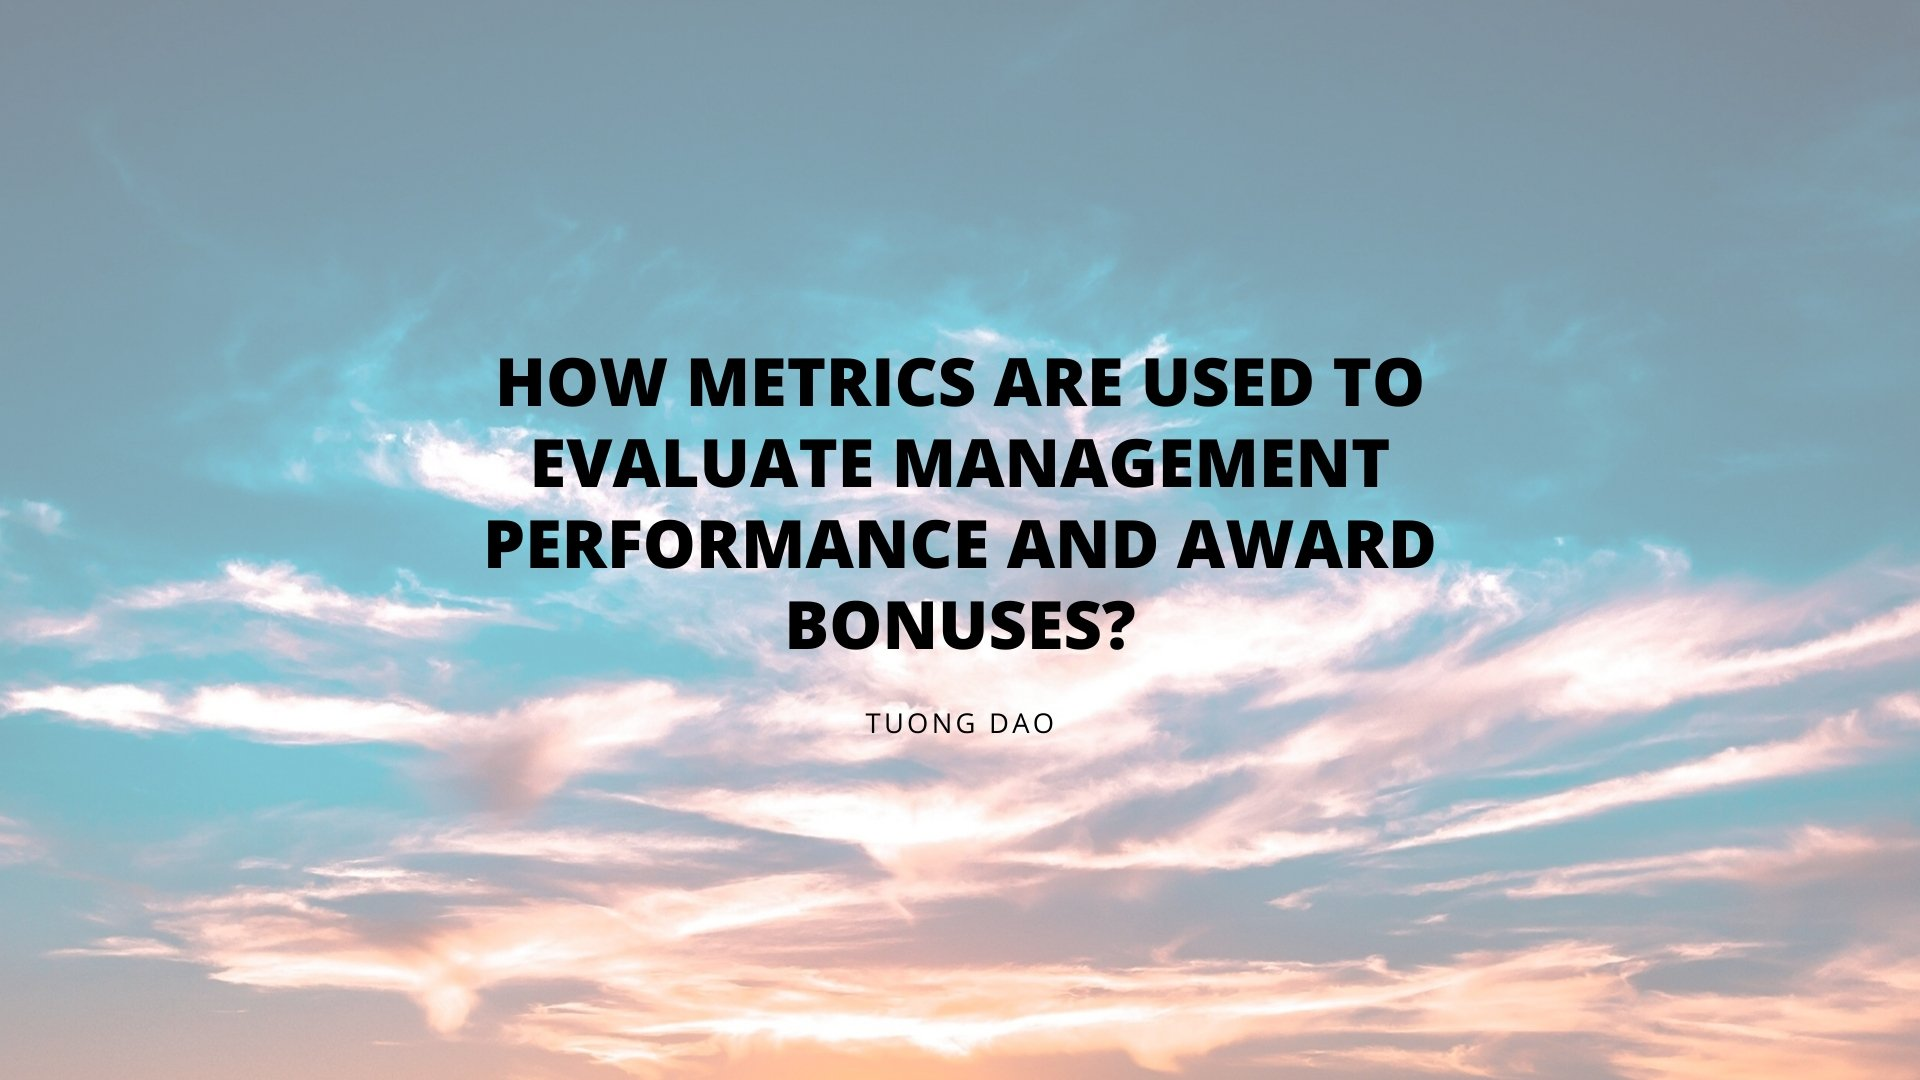 How Metrics Are Used to Evaluate Management Performance and Award Bonuses